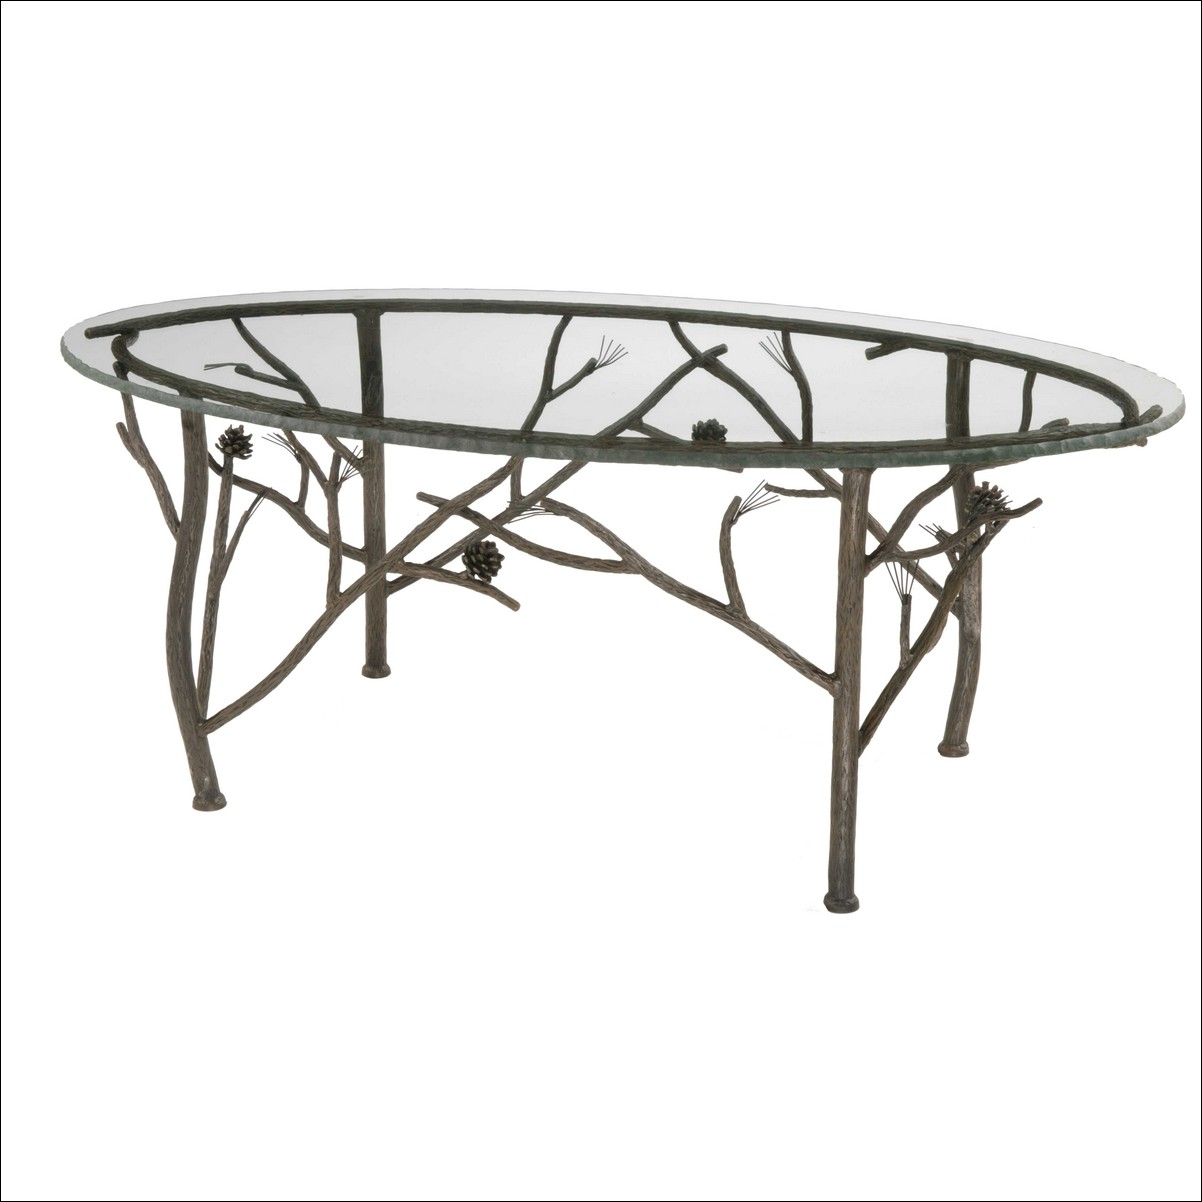 coffee accent tables wrought iron end with glass tops table legs bronze clear lamps for bedroom small white patio side outdoor umbrella hole narrow black inch round decorator cube